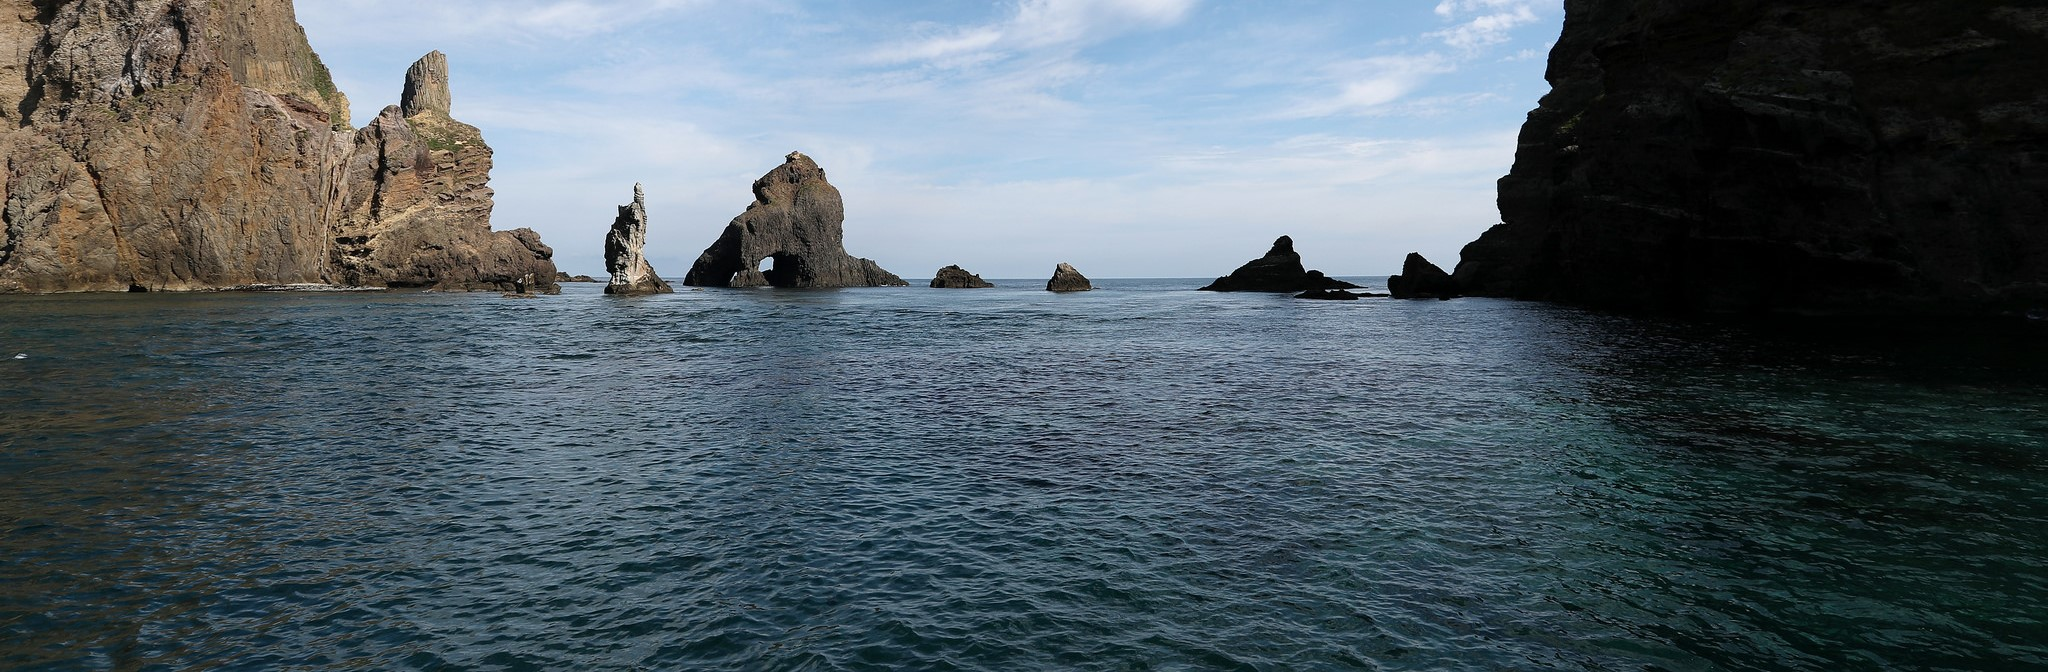 The Dokdo/Takeshima islands (Photo: Republic of Korea/Flickr)